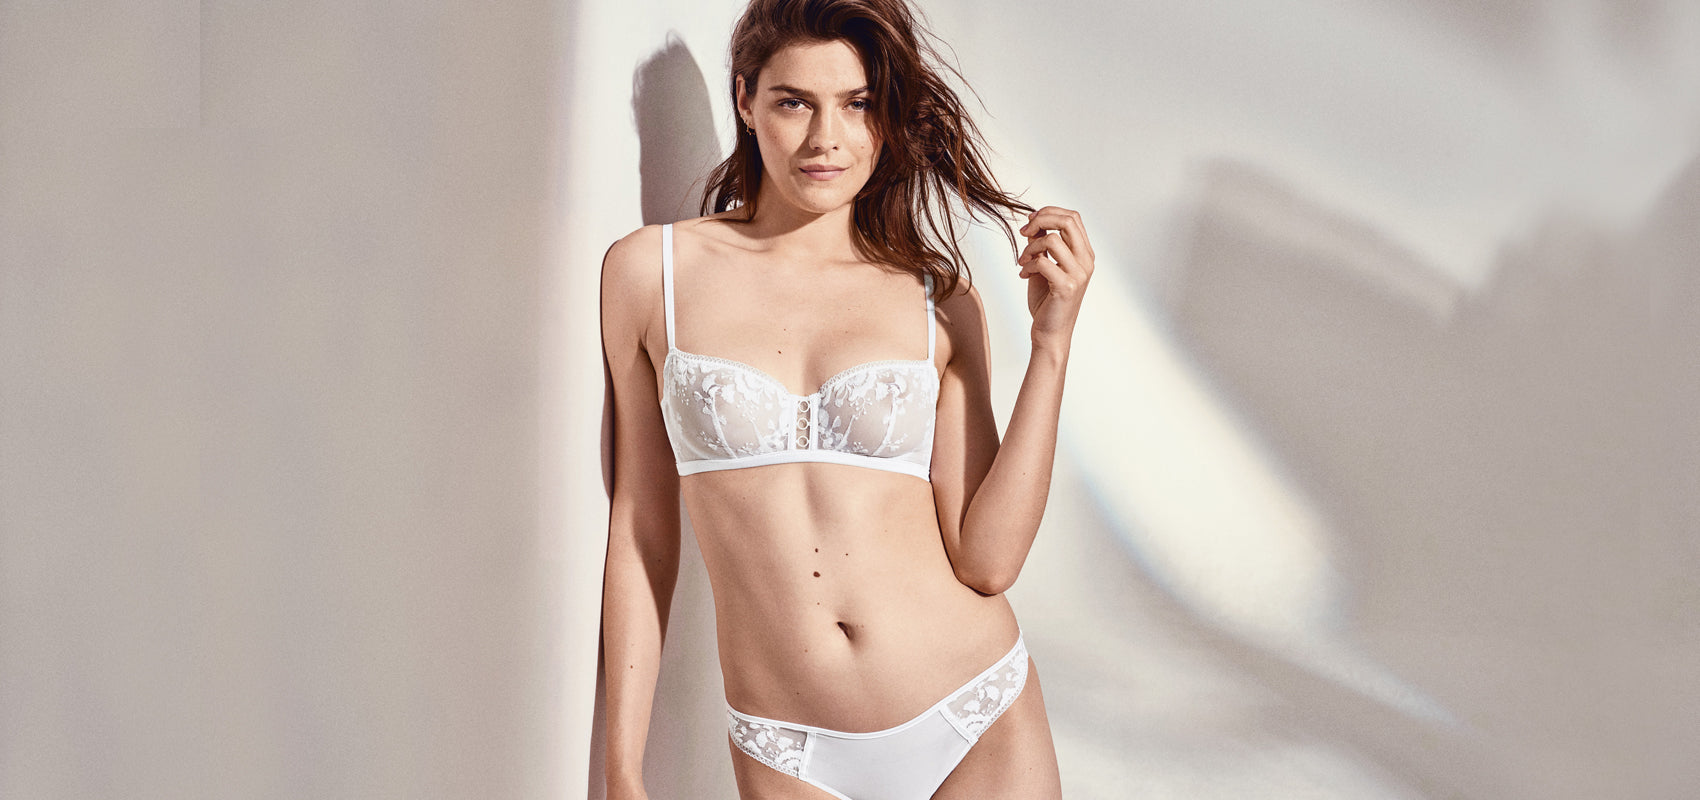 Woman wearing white lingerie bra and brief